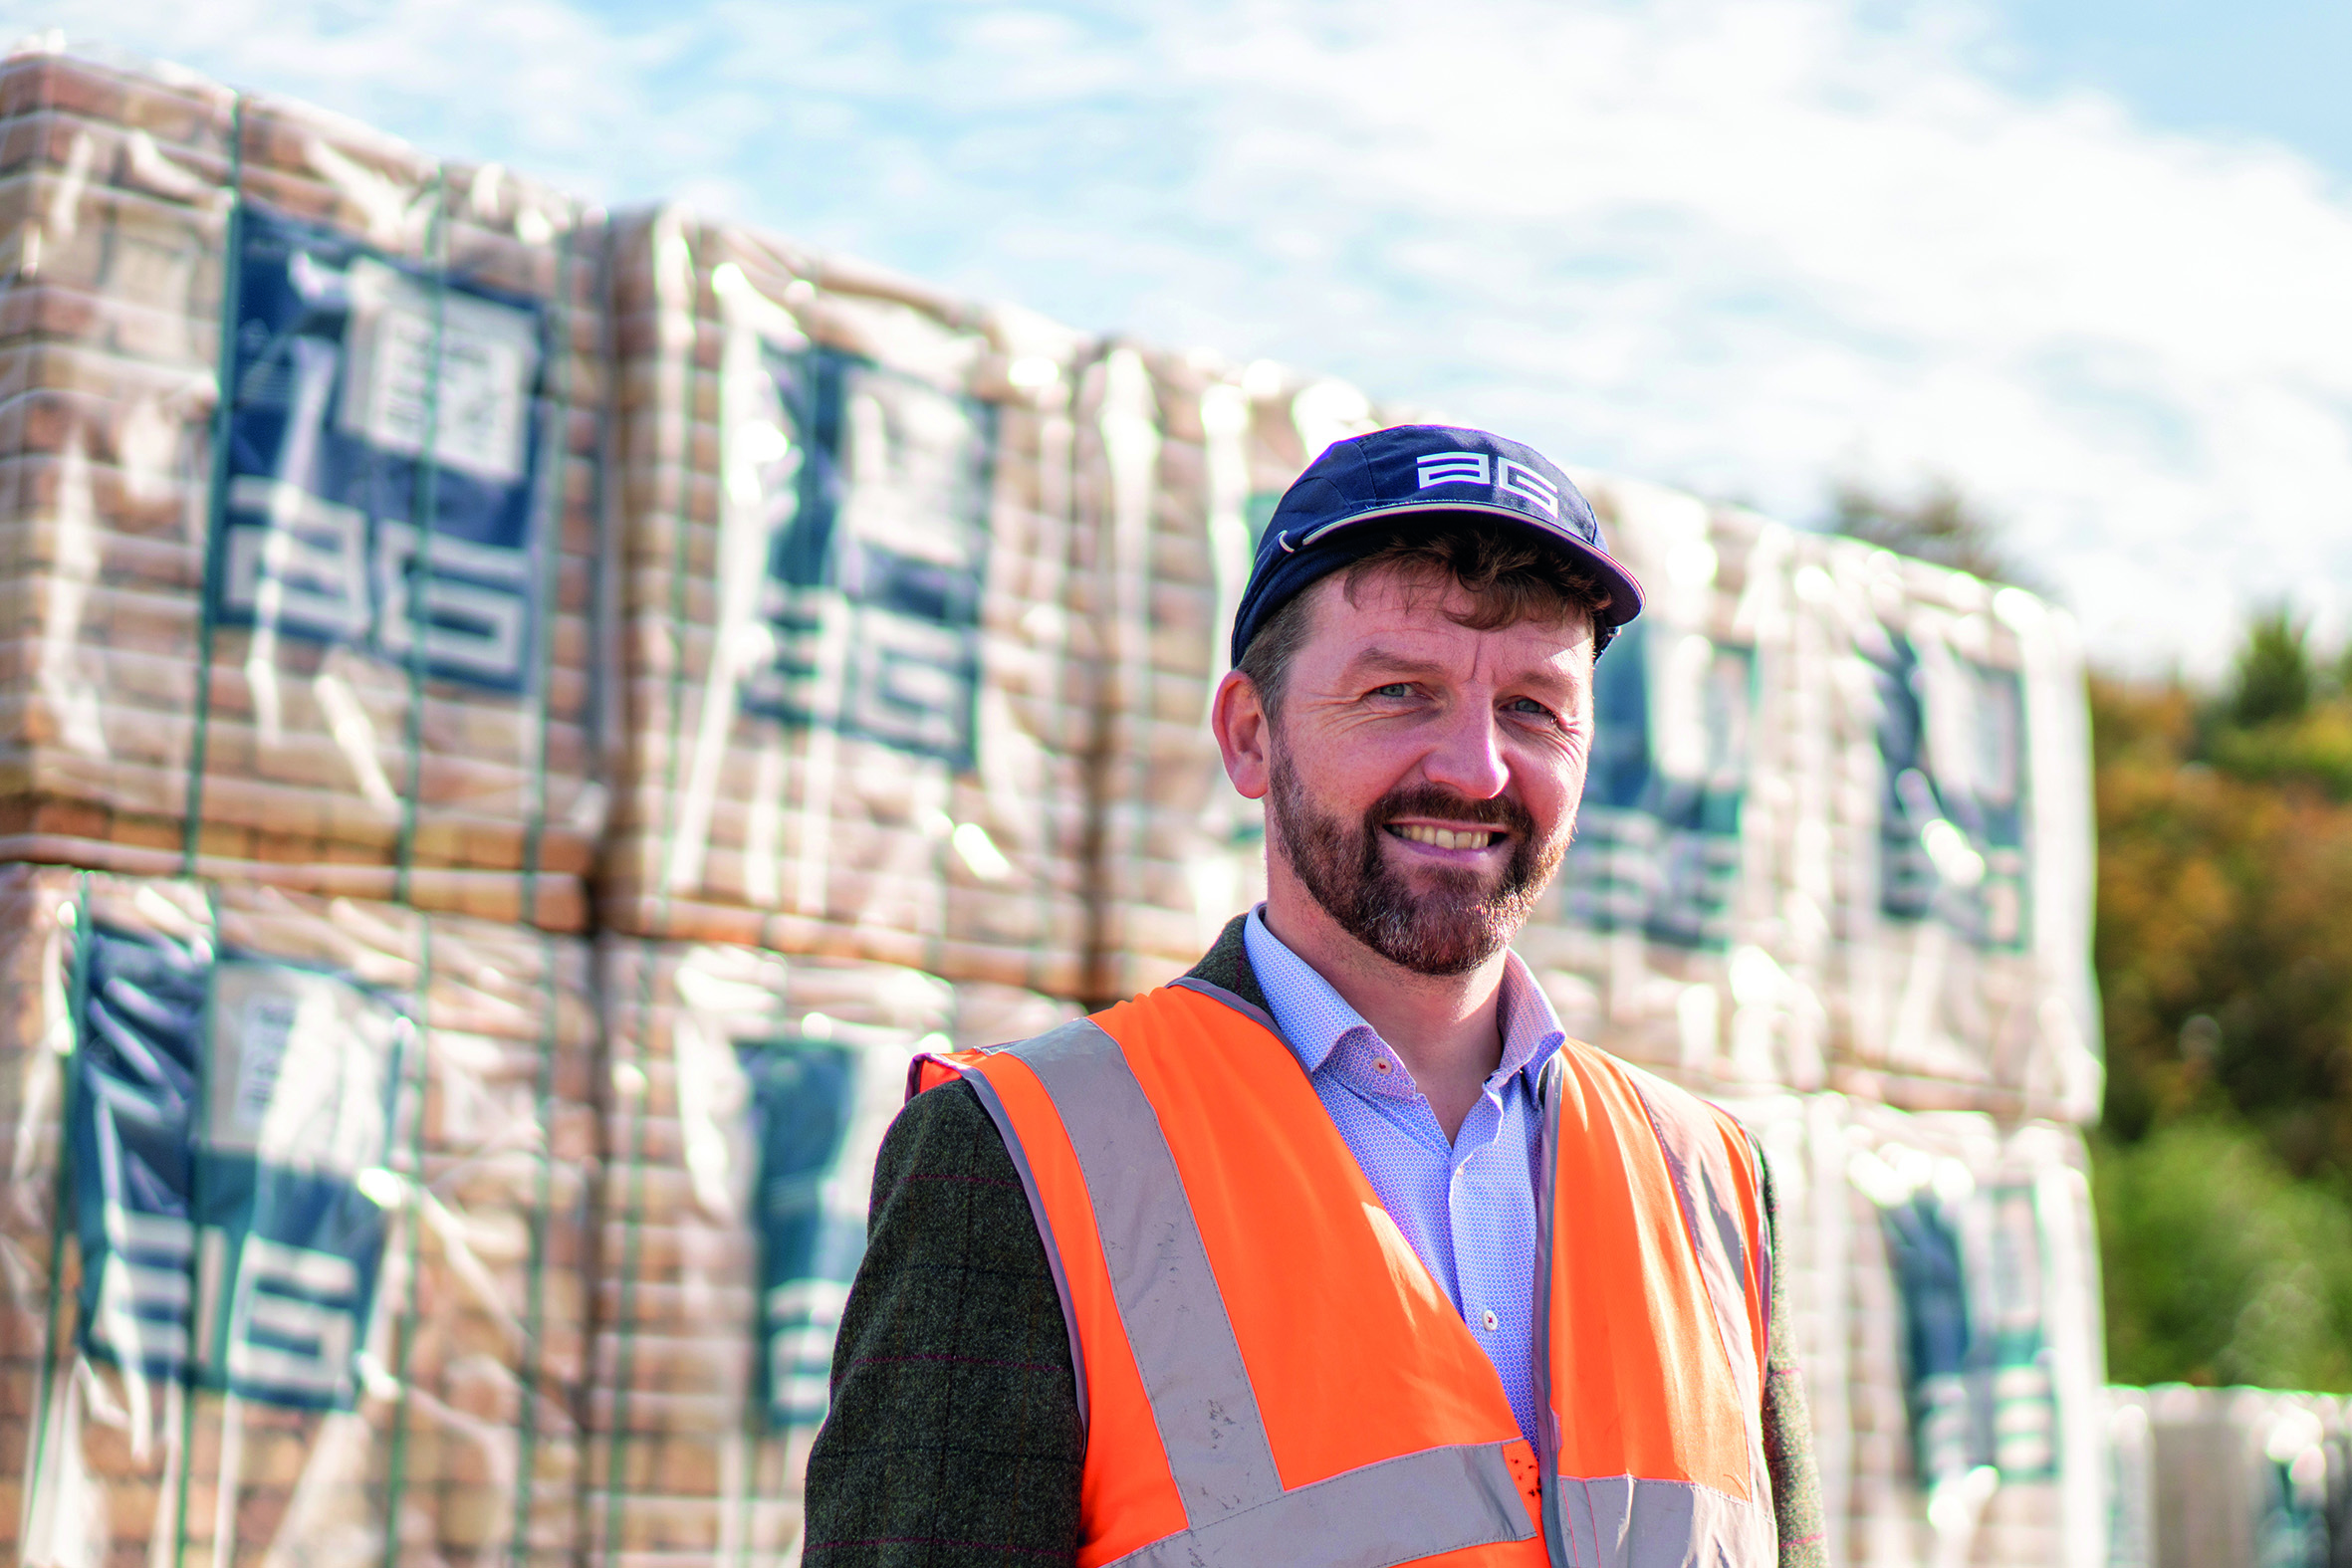 AG Invests in Production Line as Demand for Facing Bricks Doubles